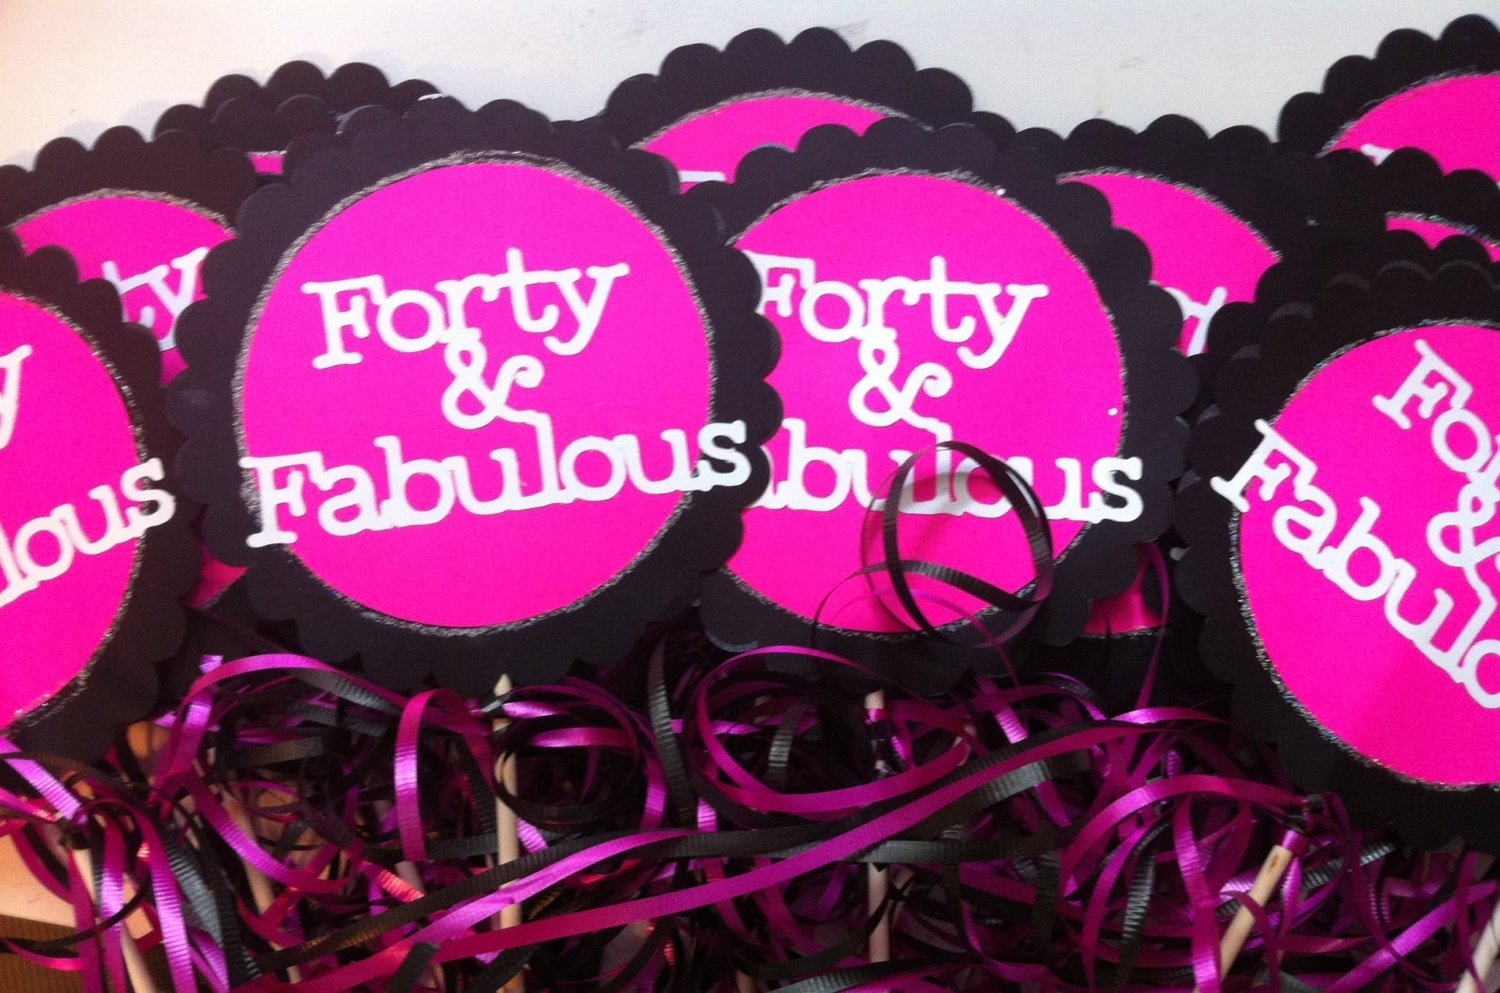 10 Lovely Ideas For 40Th Birthday Party Female 7 fabulous 40th birthday party ideas for women birthday inspire 3 2020